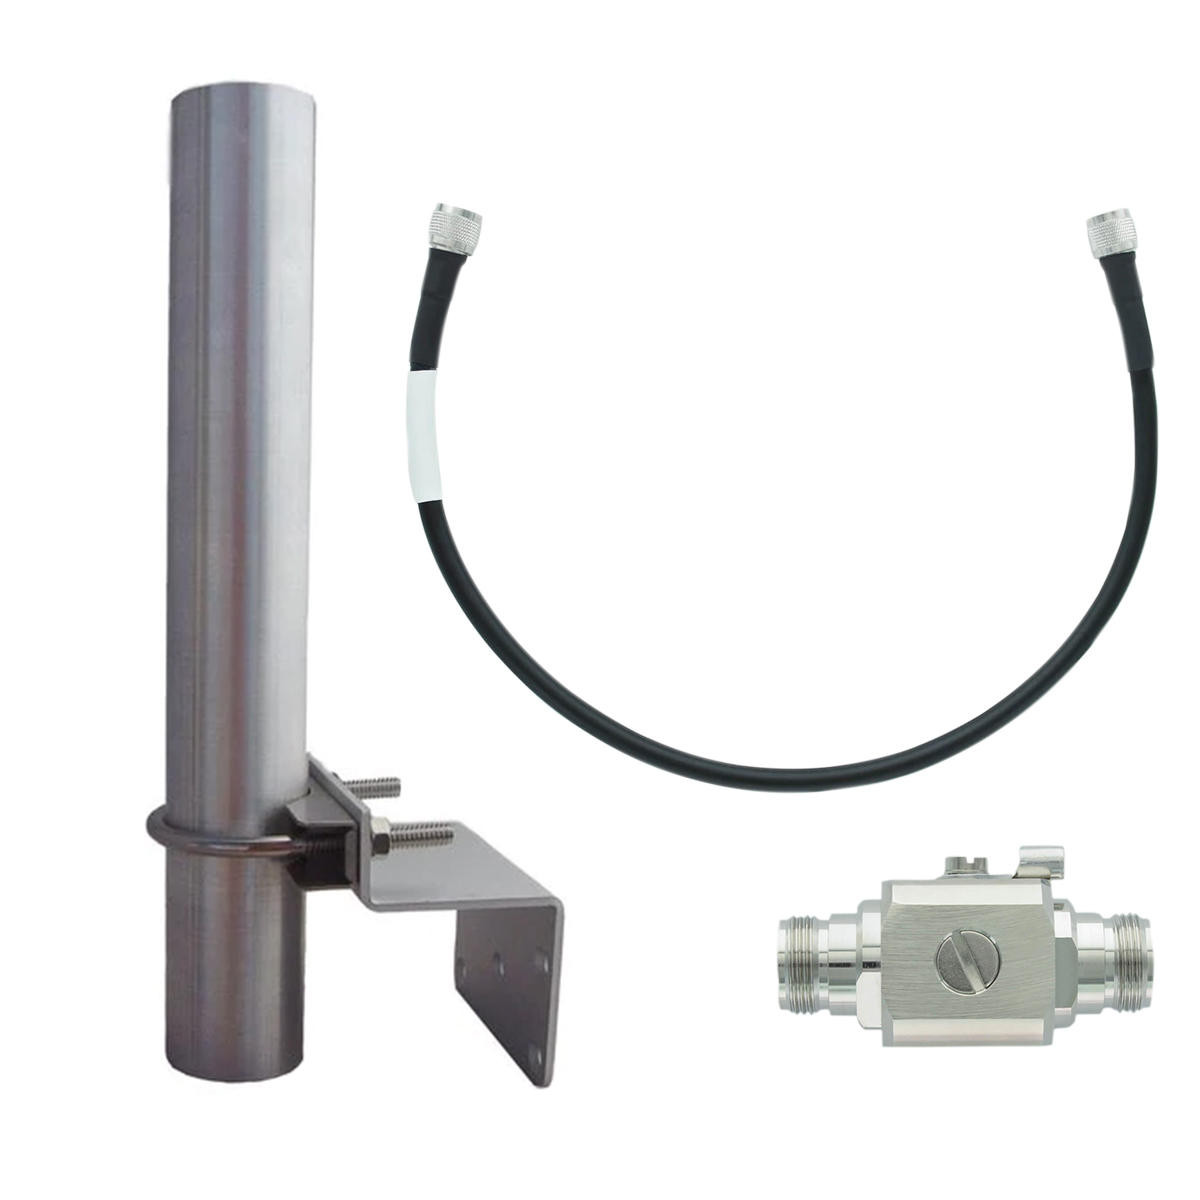 Bolton Tech Bolton Technical 50 Ohm Essential Commercial Installer Kit or BT974907-BL1